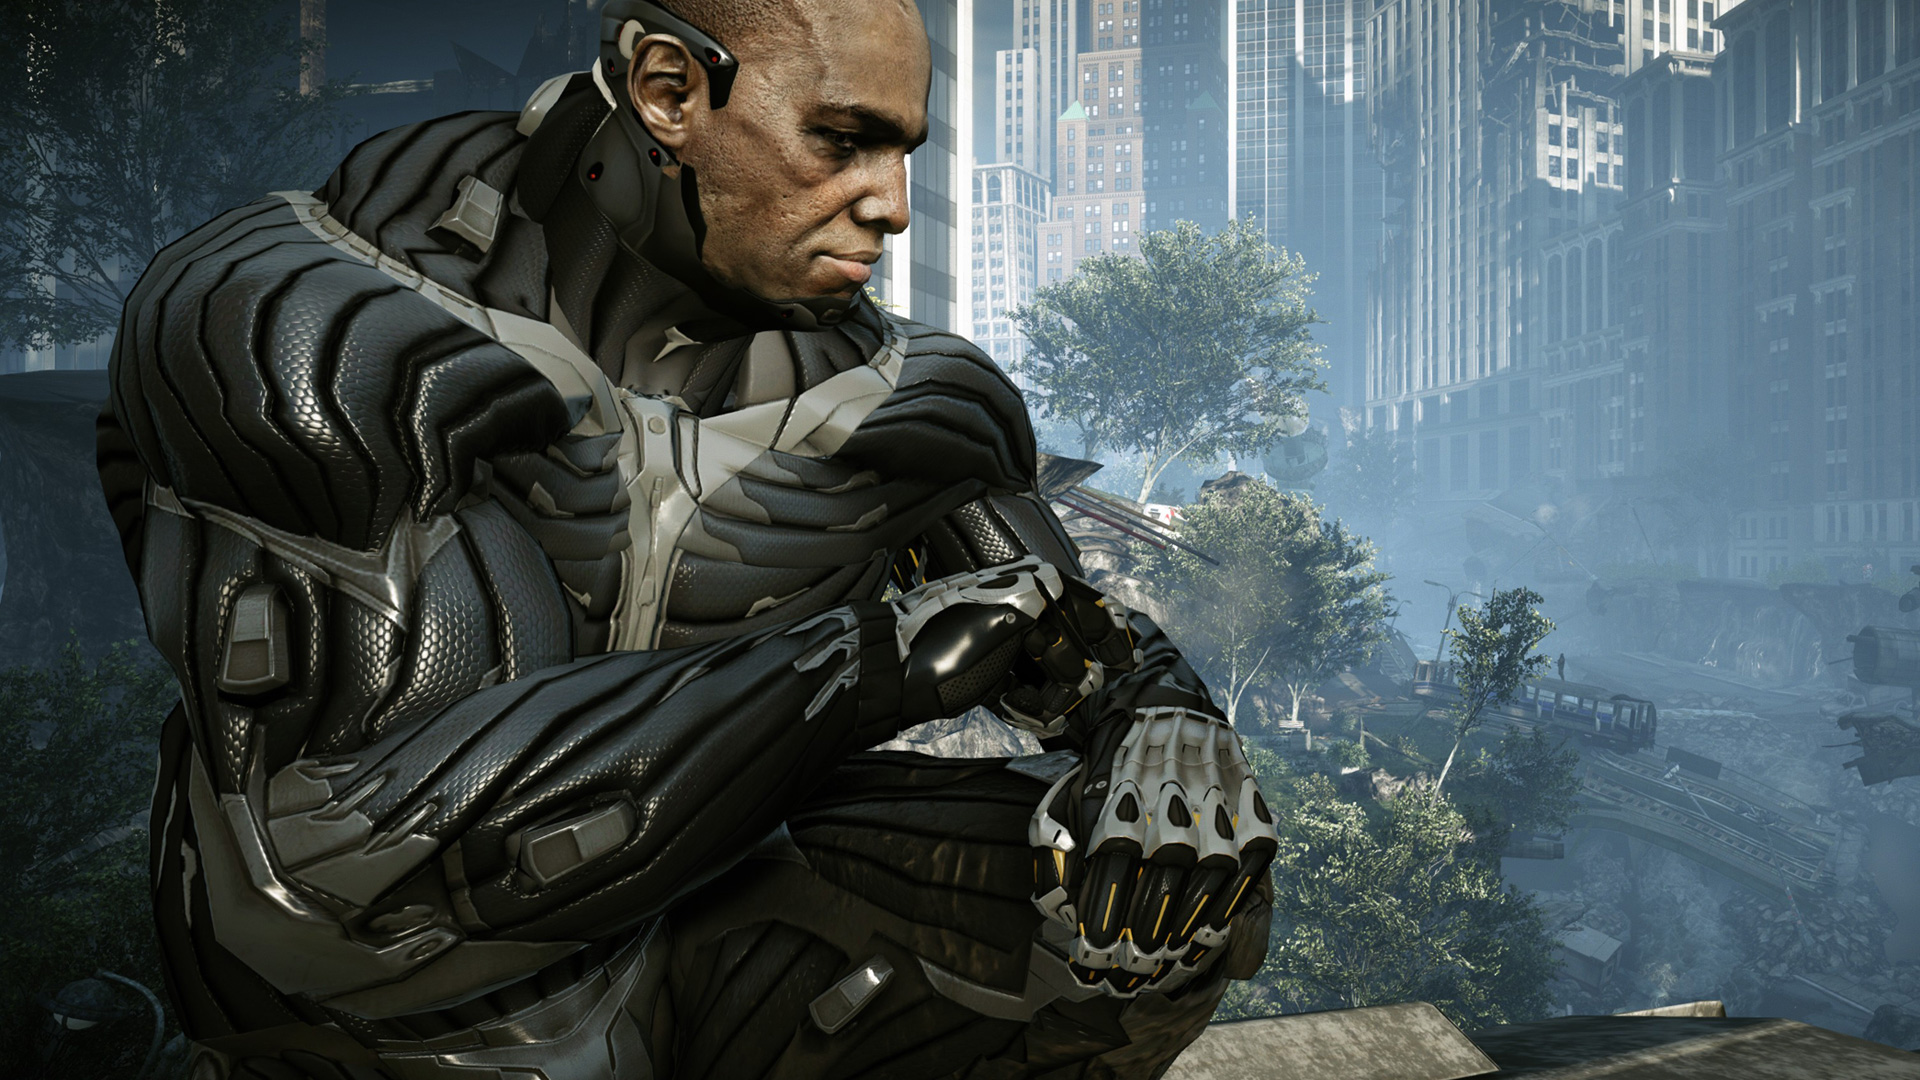 Free Crysis 2 Wallpaper in 1920x1080